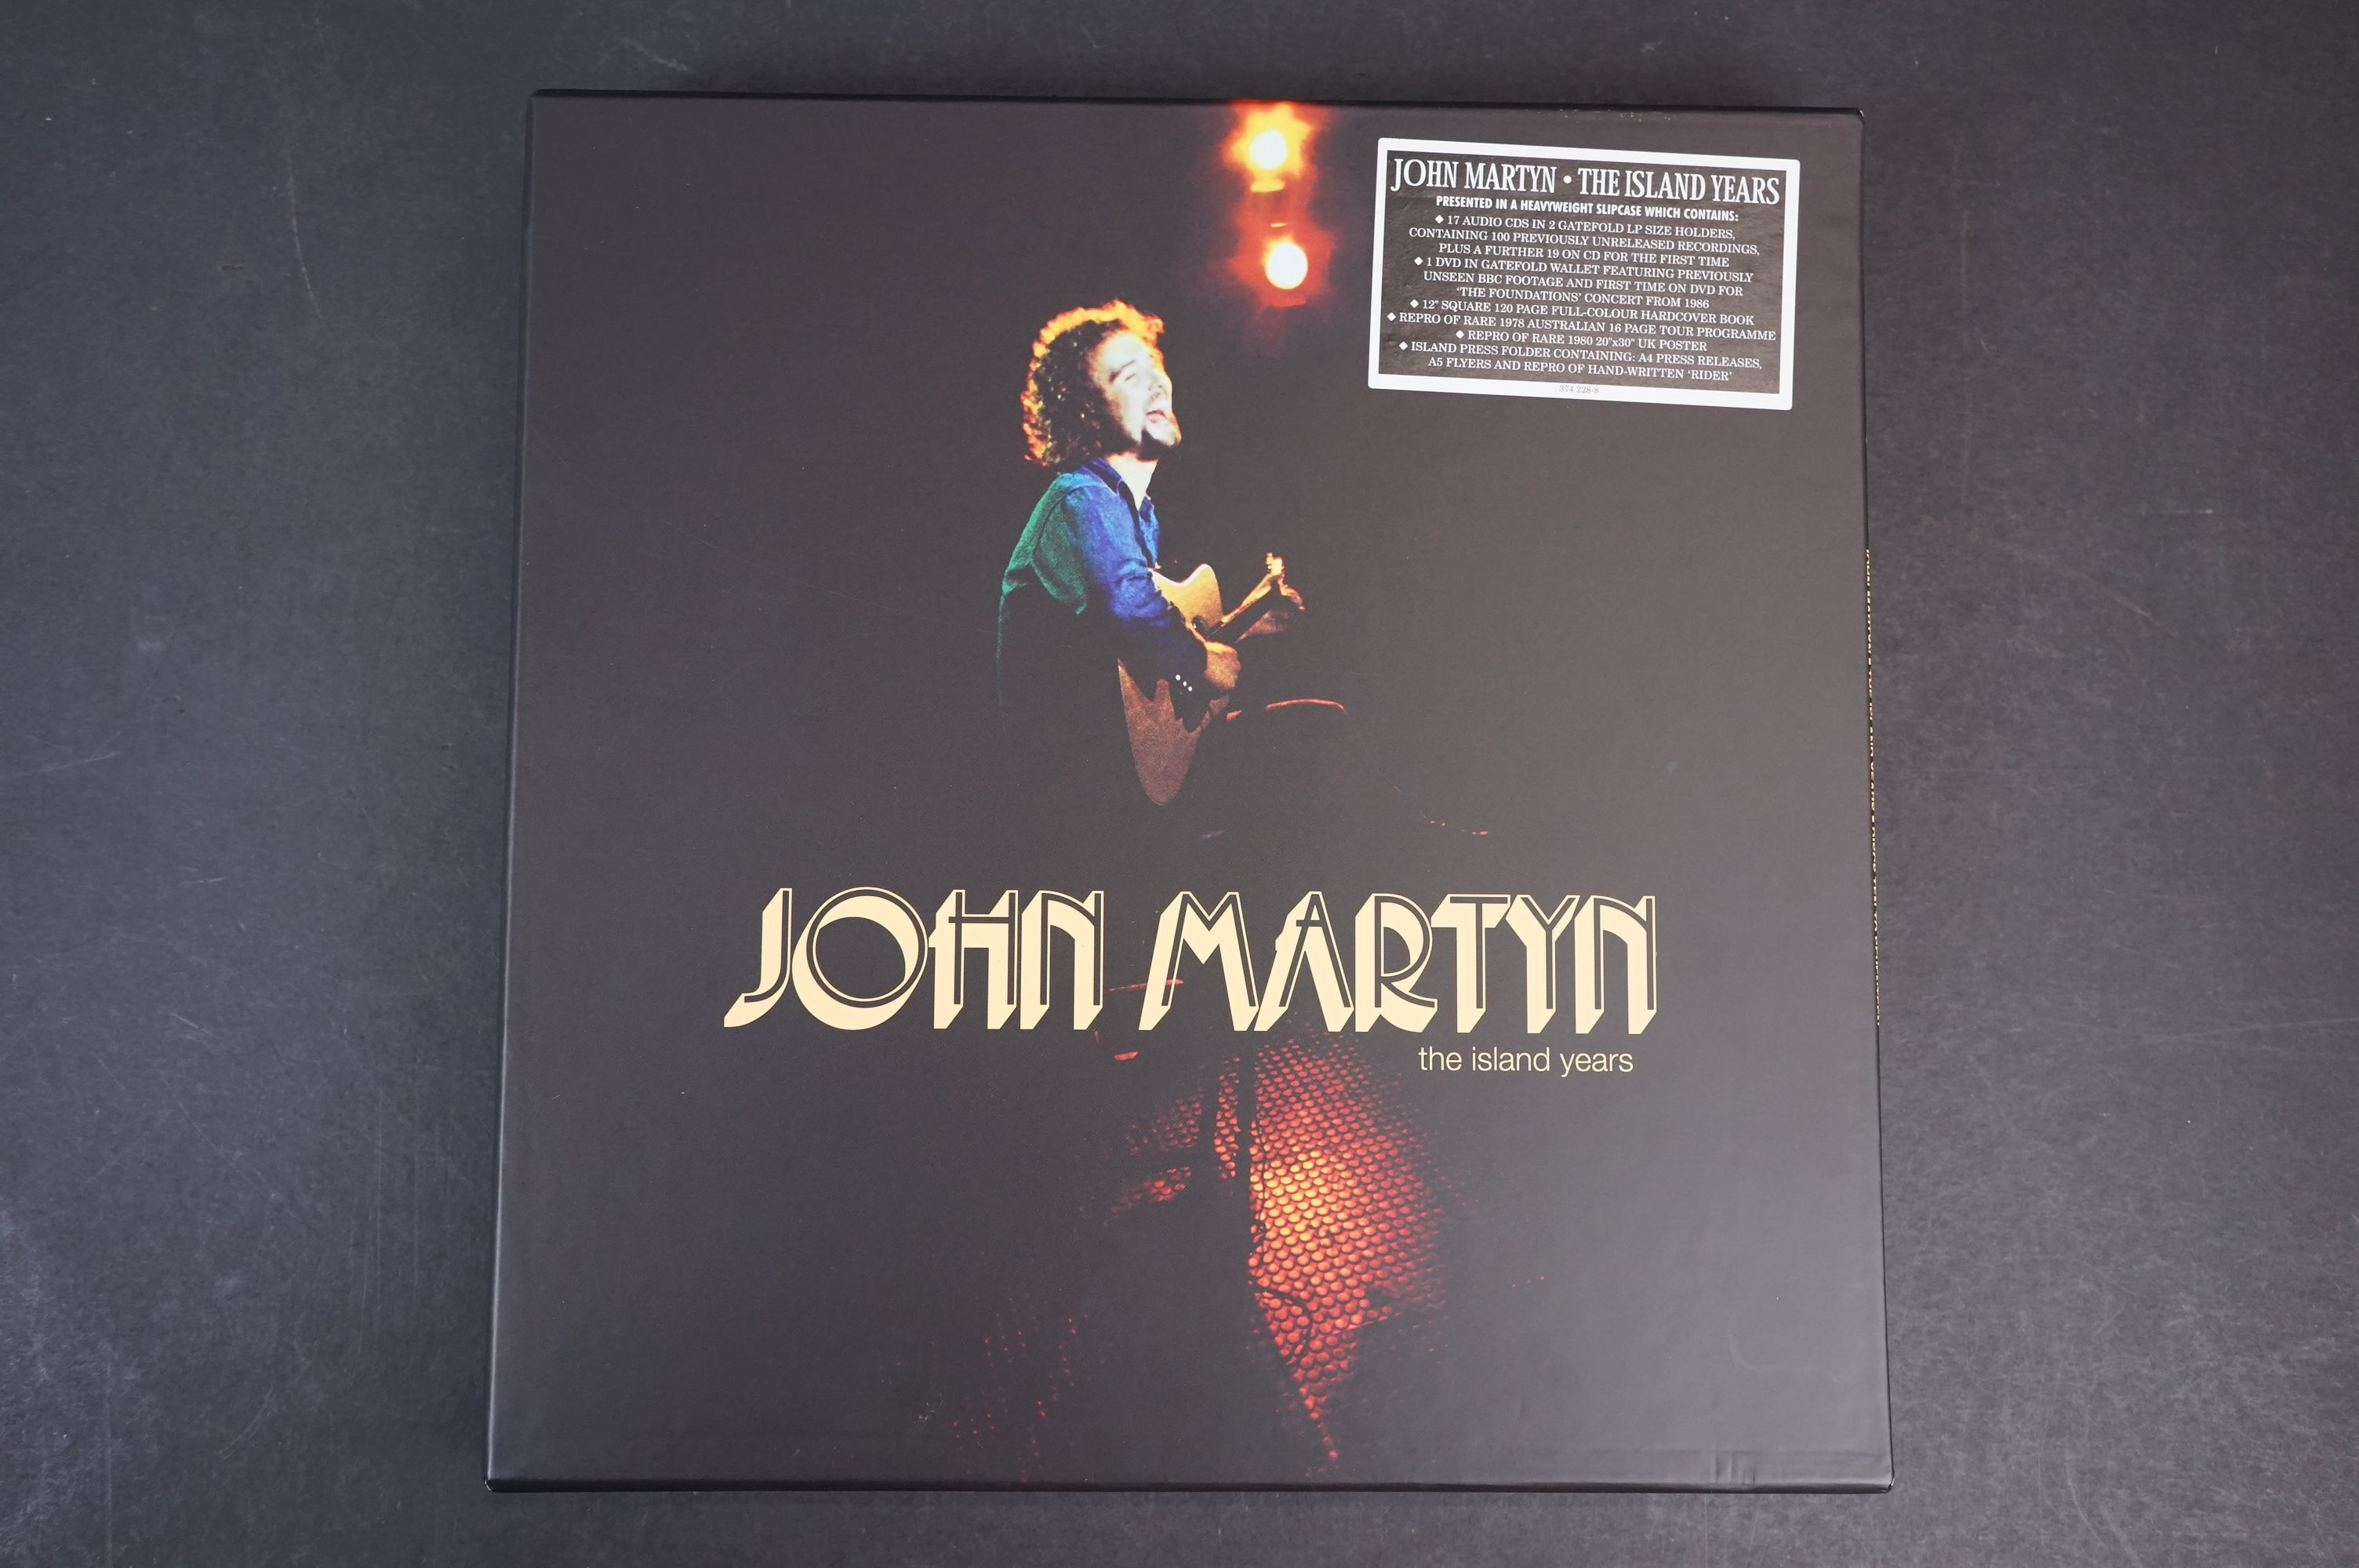 CD / DVD / Vinyl - John Martyn The Island Years 374228-8 complete and ex